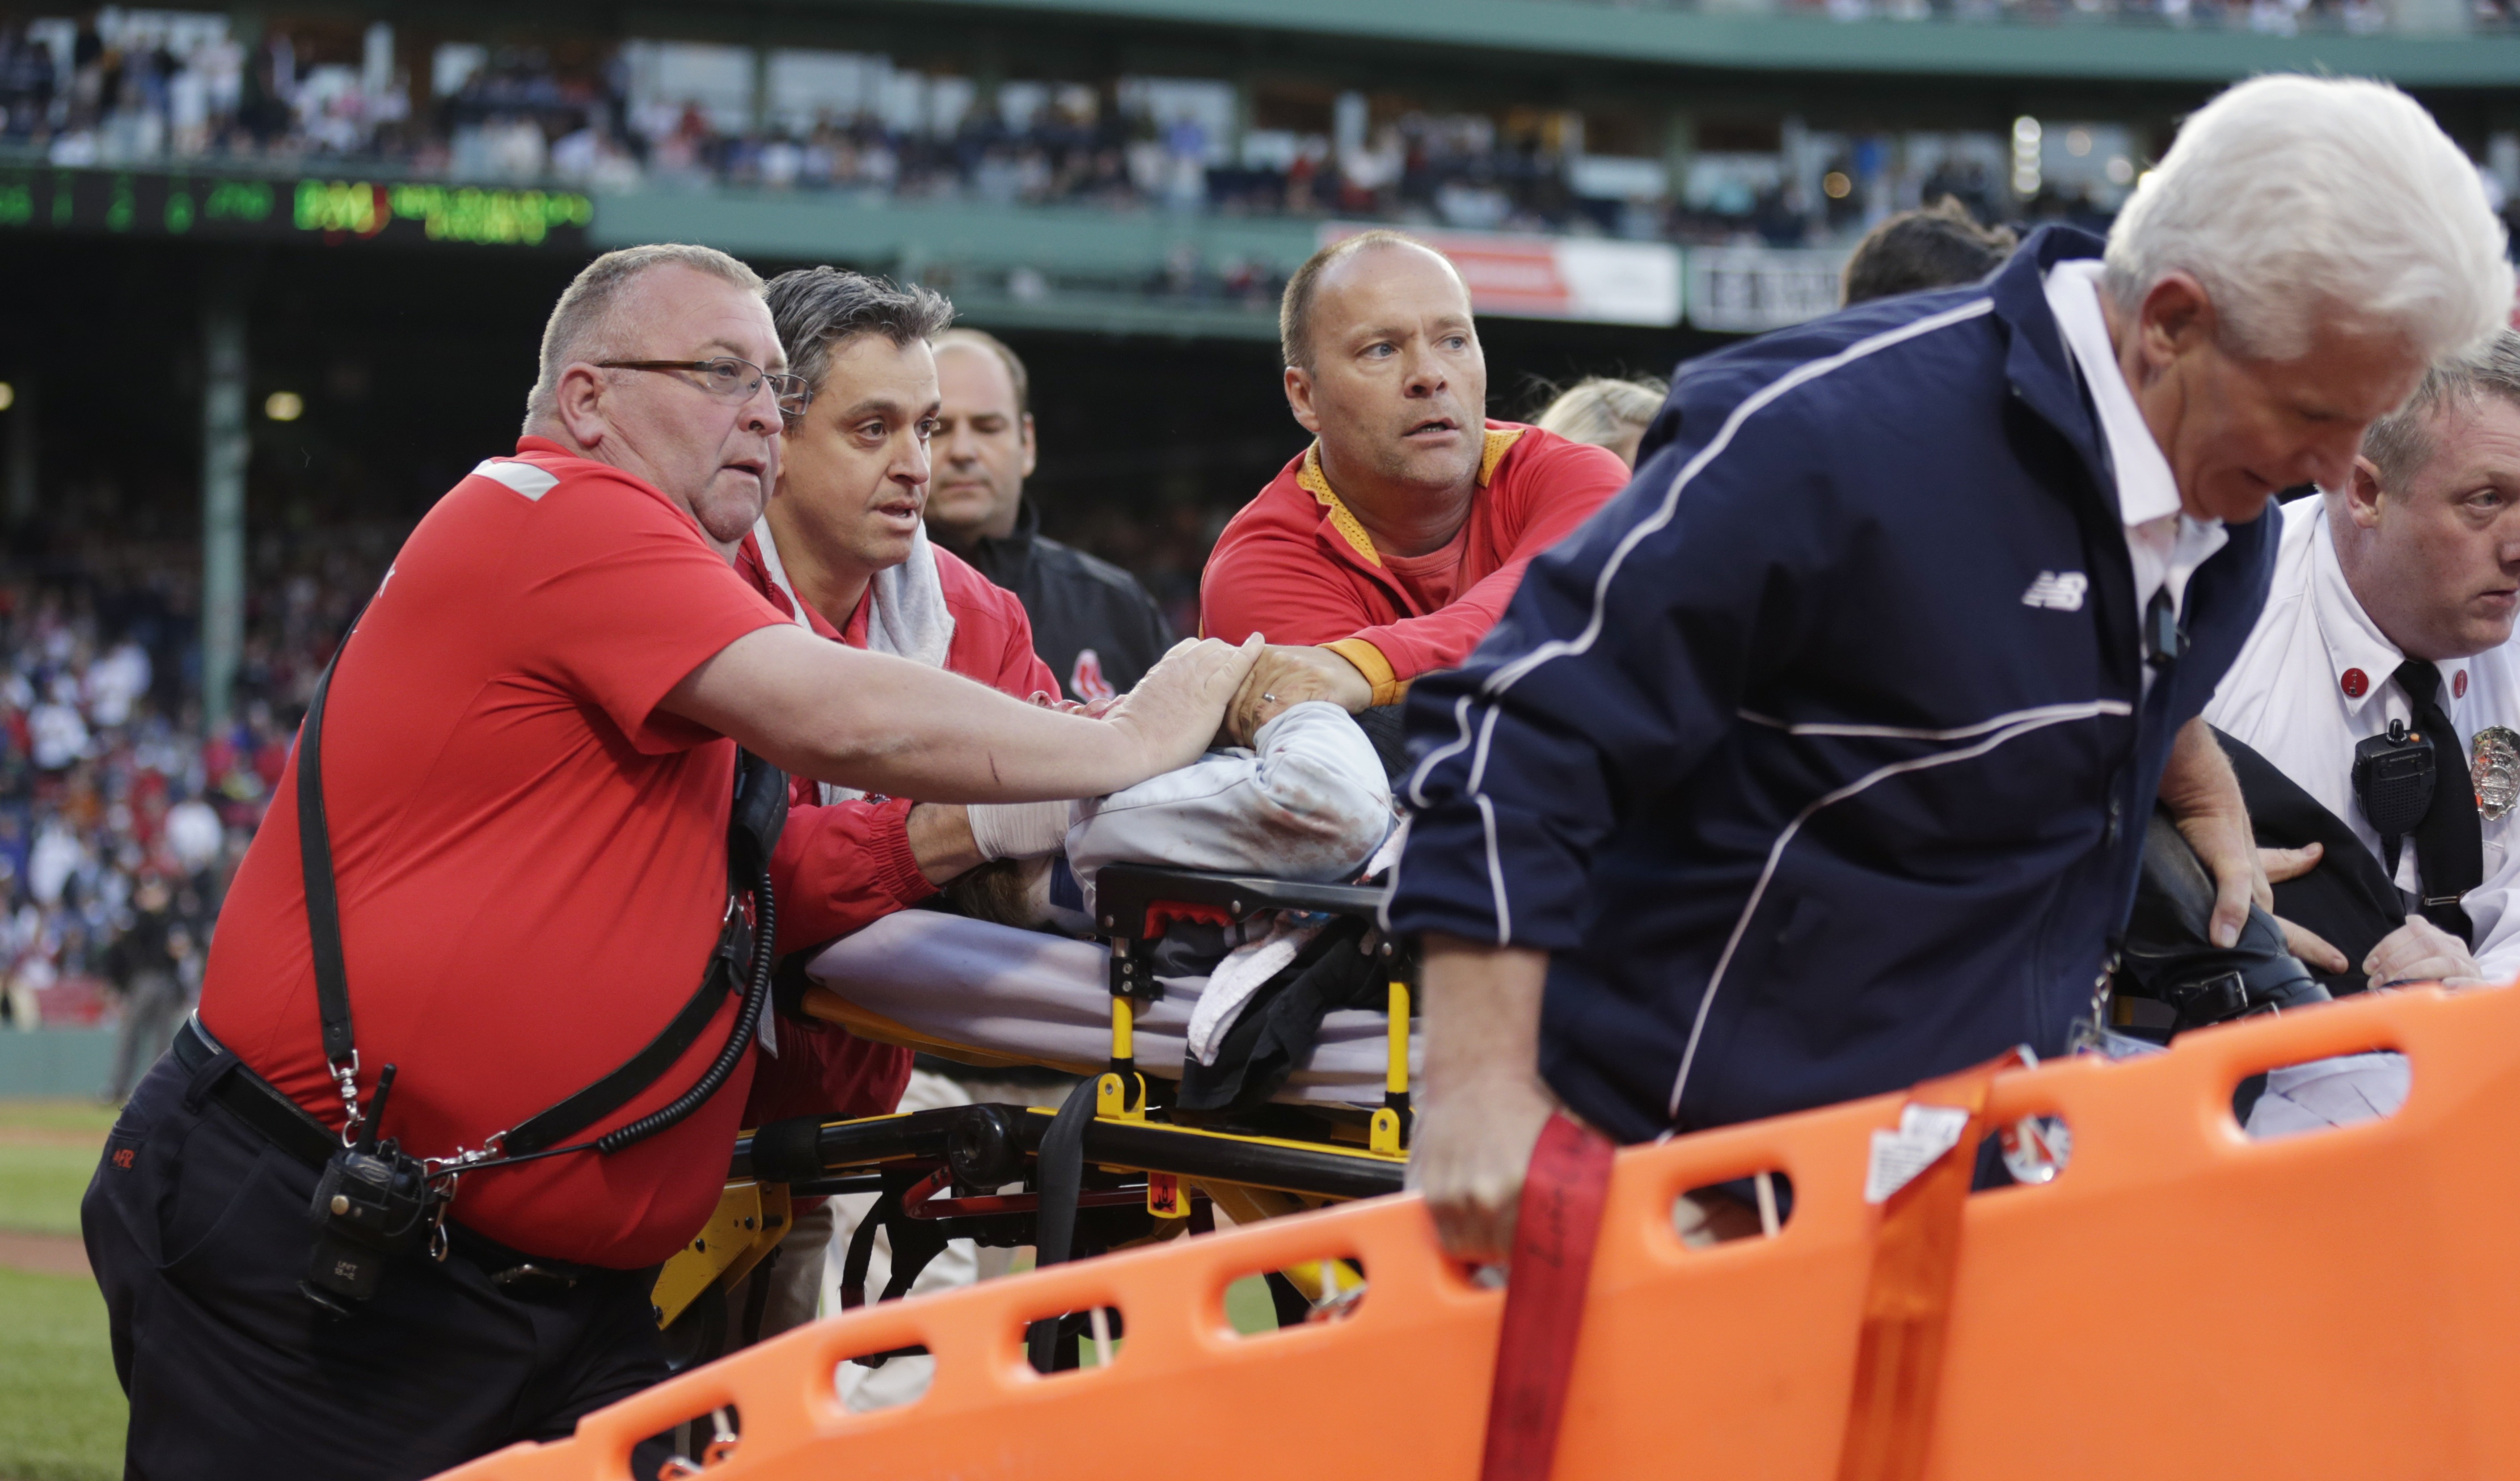 Boston Red Sox medical personnel tend to a woman, who with was hit by a wooden shard, off a broken bat of Oakland Athletics' Brett Lawrie, in the second inning during a baseball game at Fenway Park in Boston, Friday, June 5, 2015. The game stopped as the